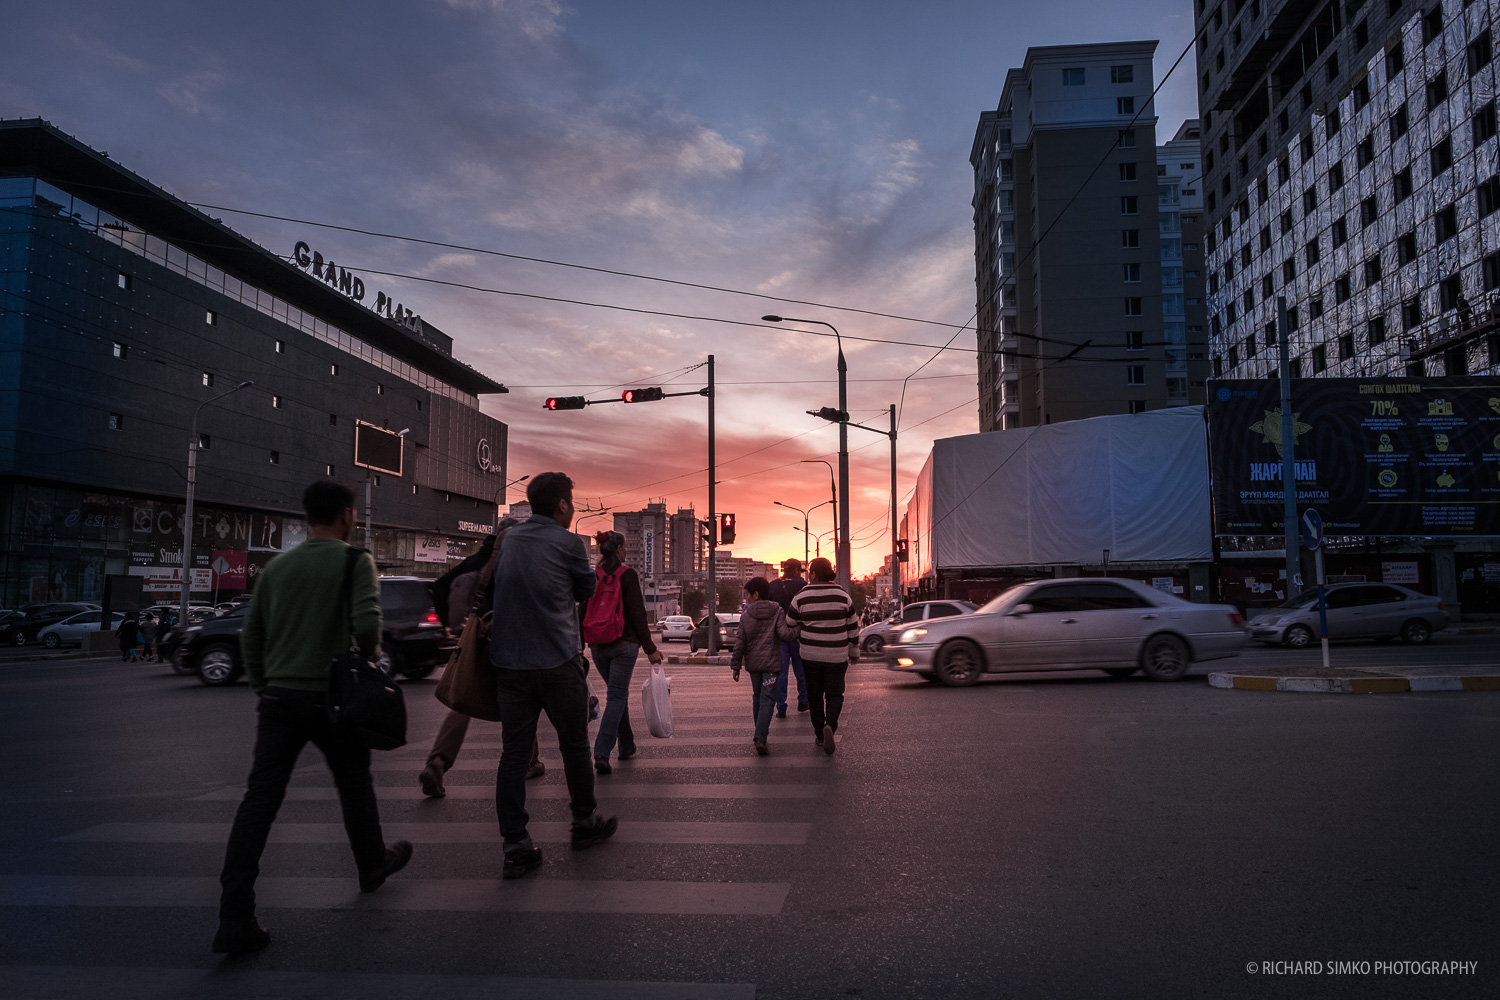 Sunset on the Peace Avenue, the longest, largest and main transit venue in Ulaanbaatar.